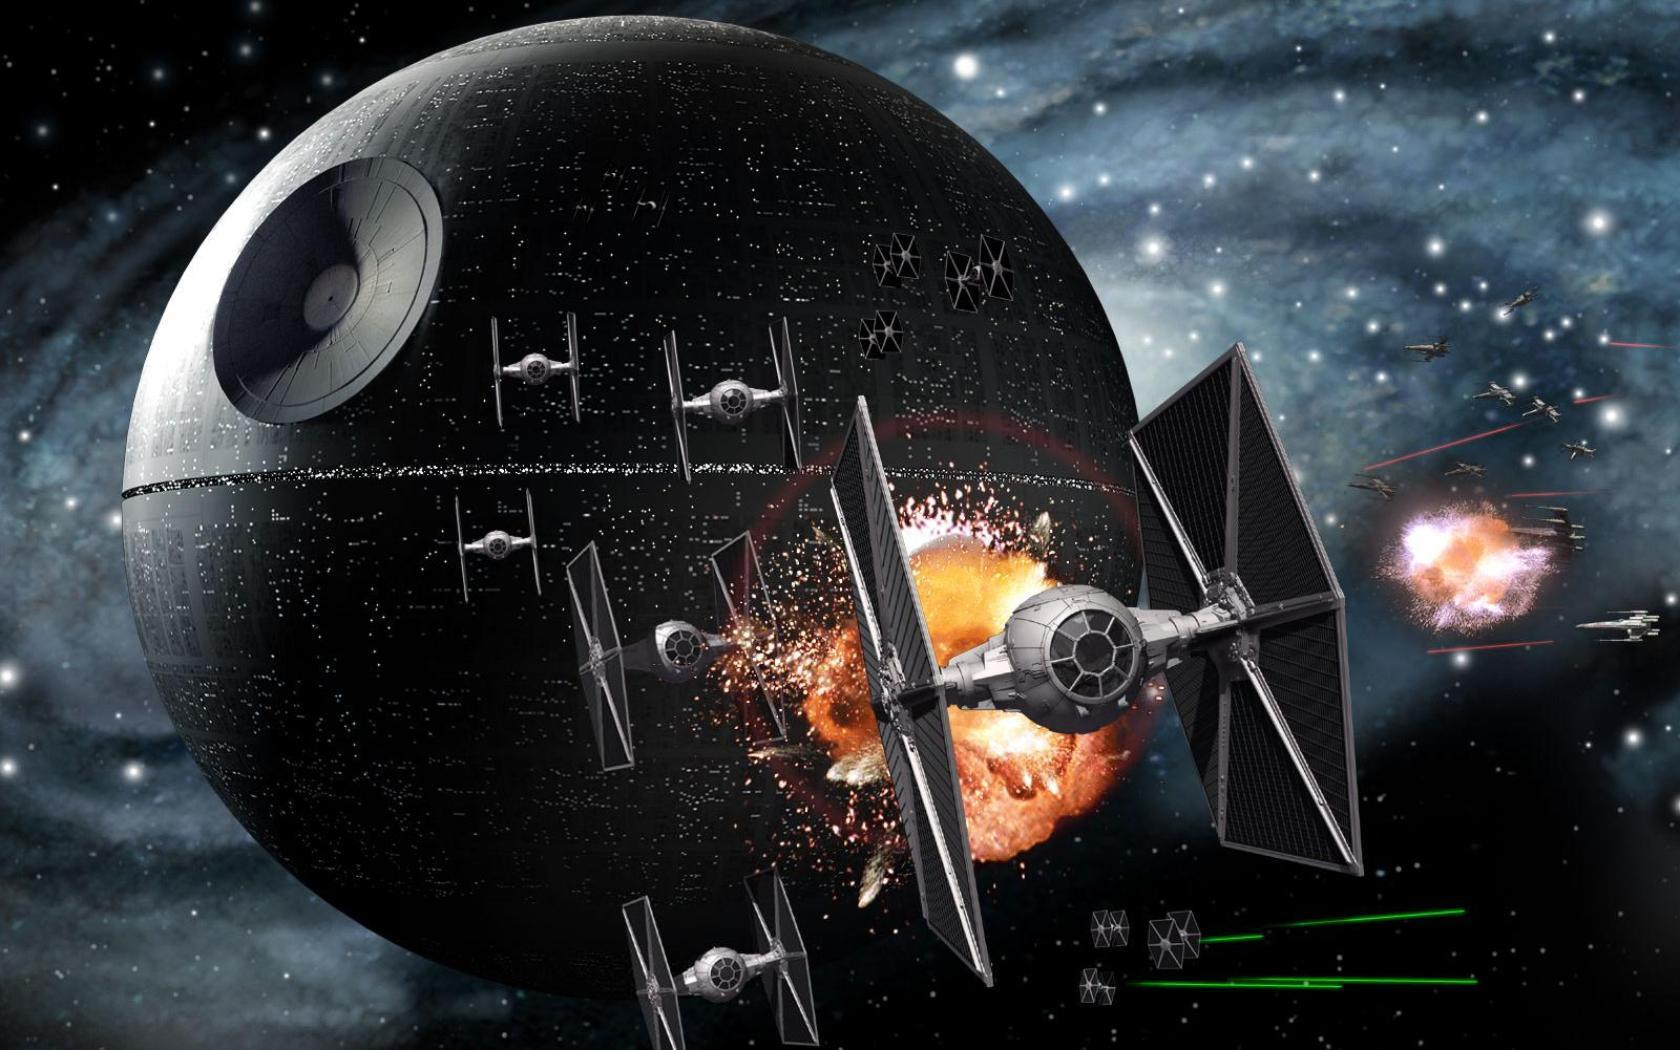 imperial tie fighter wallpaper - photo #31